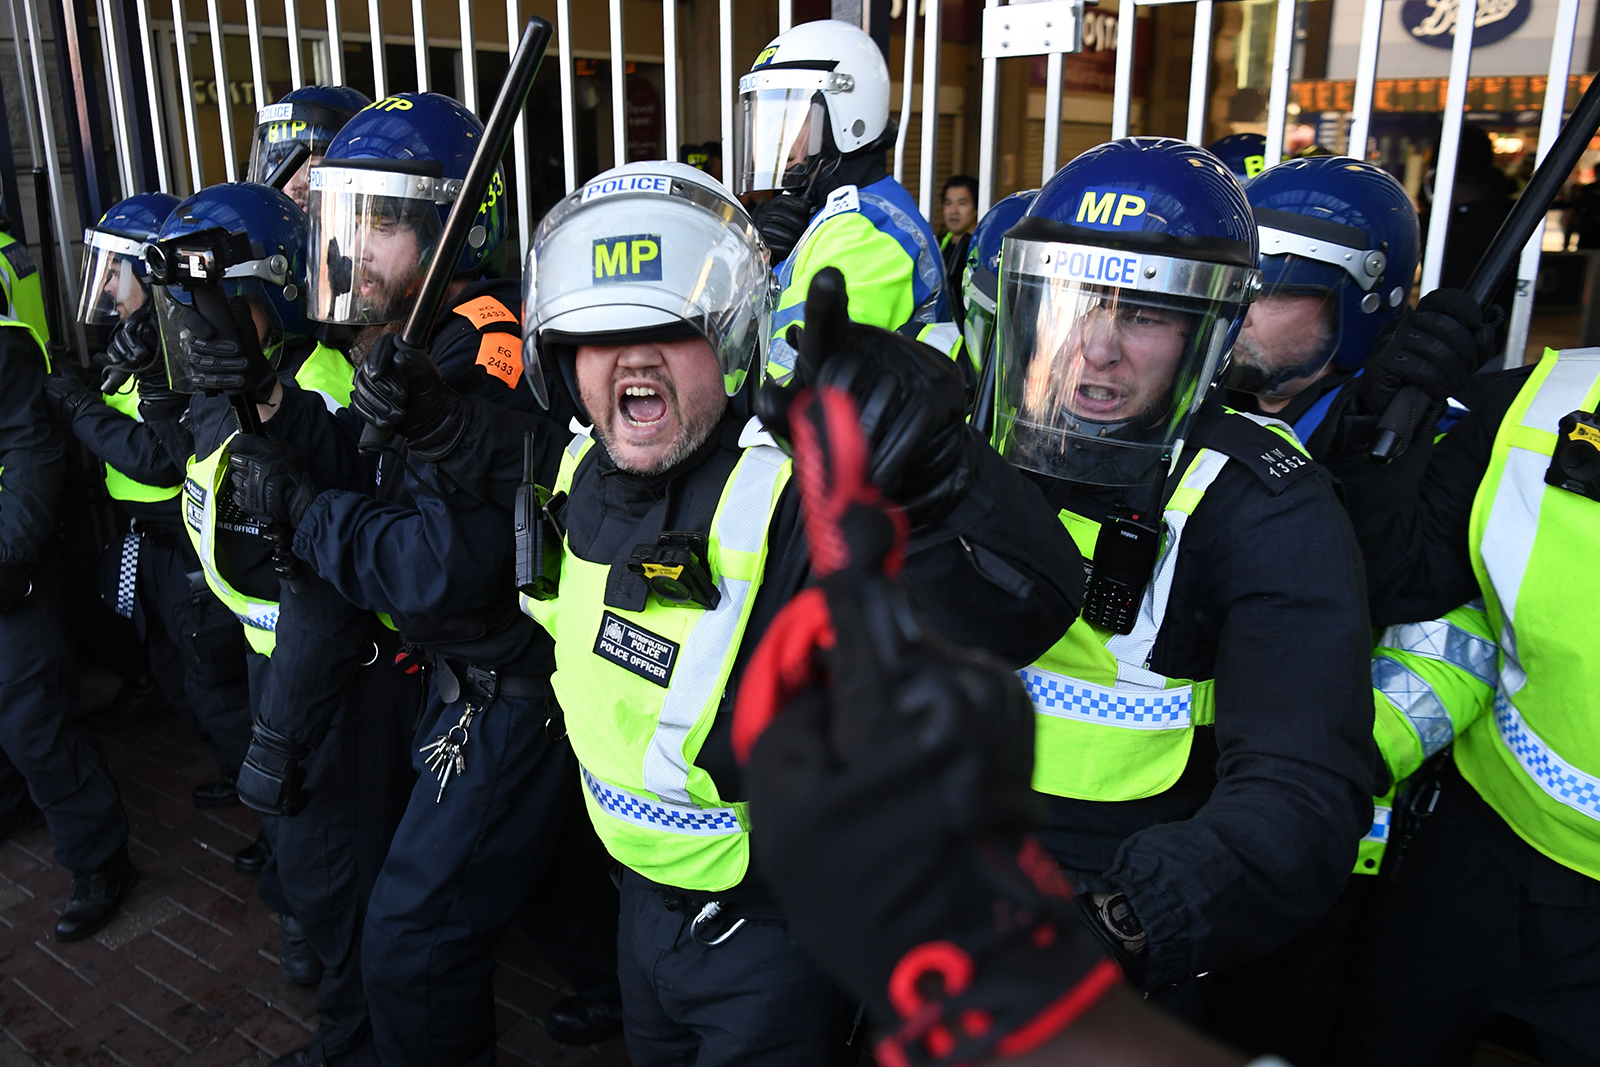 Police prevent people entering Waterloo Station after protesters supporting the Black Lives Matter movement clash with opponents in central London on June 13.